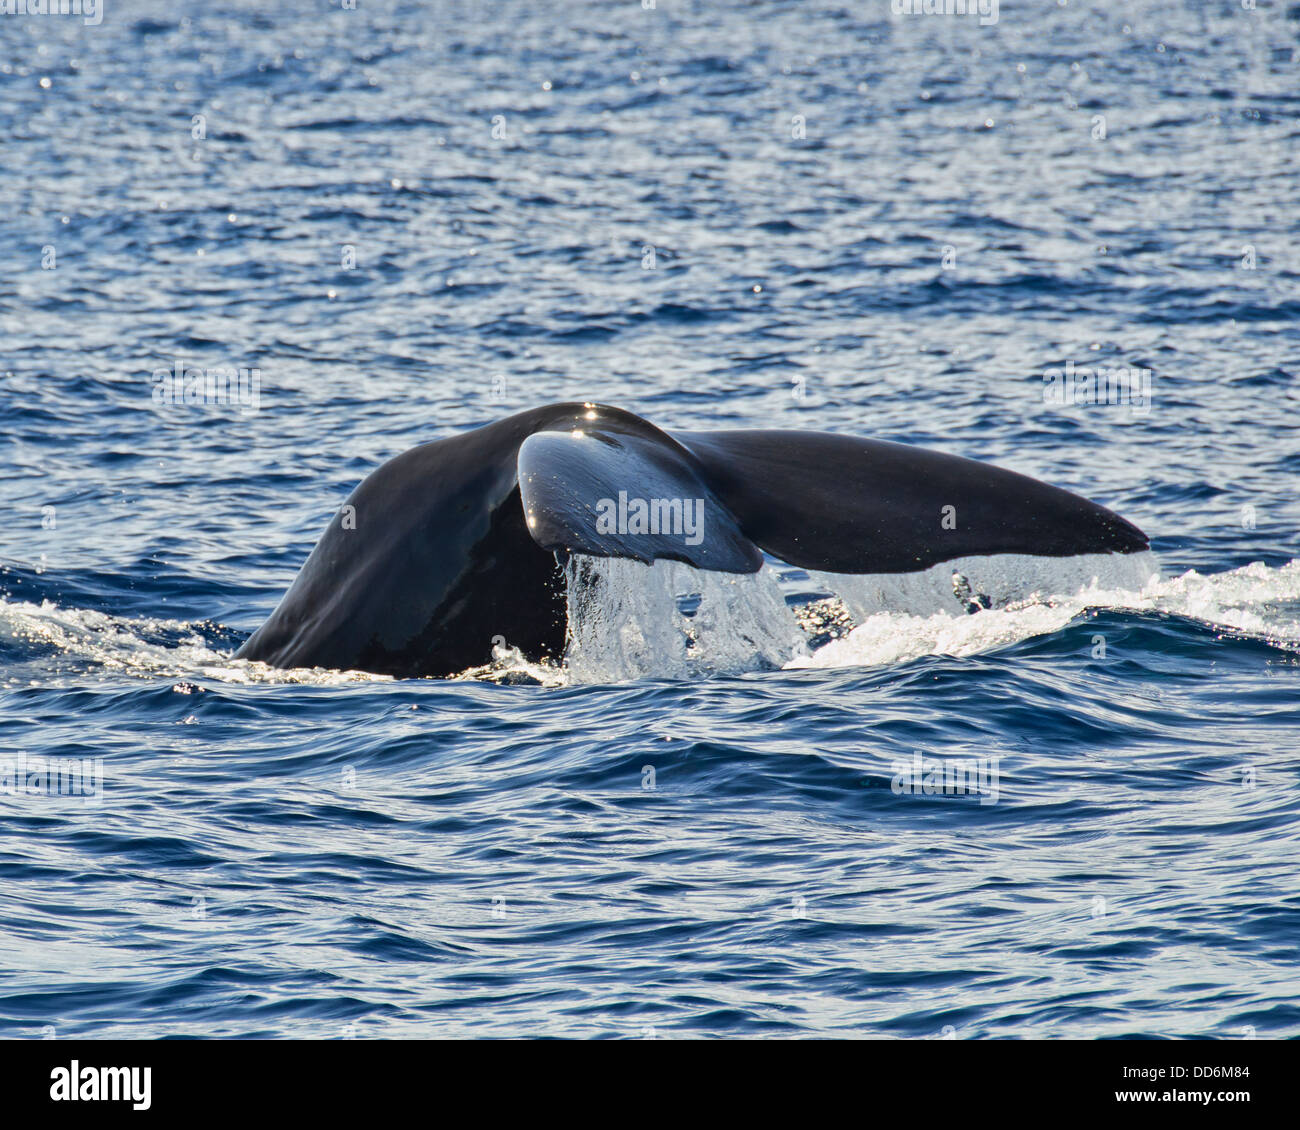 this is a shot of a sperm whale making a deep dive to hunt - Stock Image